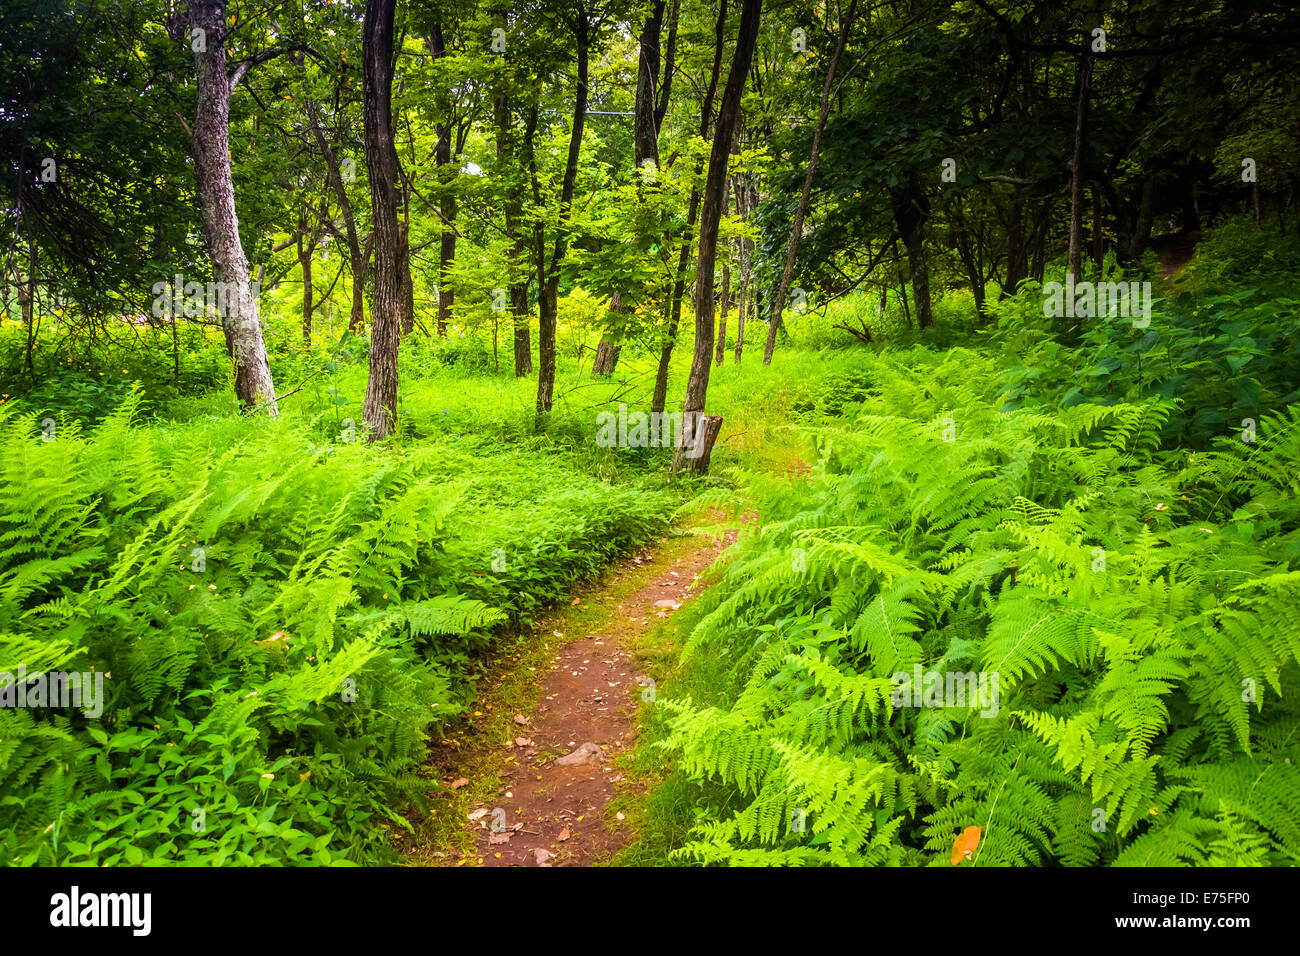 Ferns along a narrow trail through a forest at Shenandoah National Park, Virginia. - Stock Image